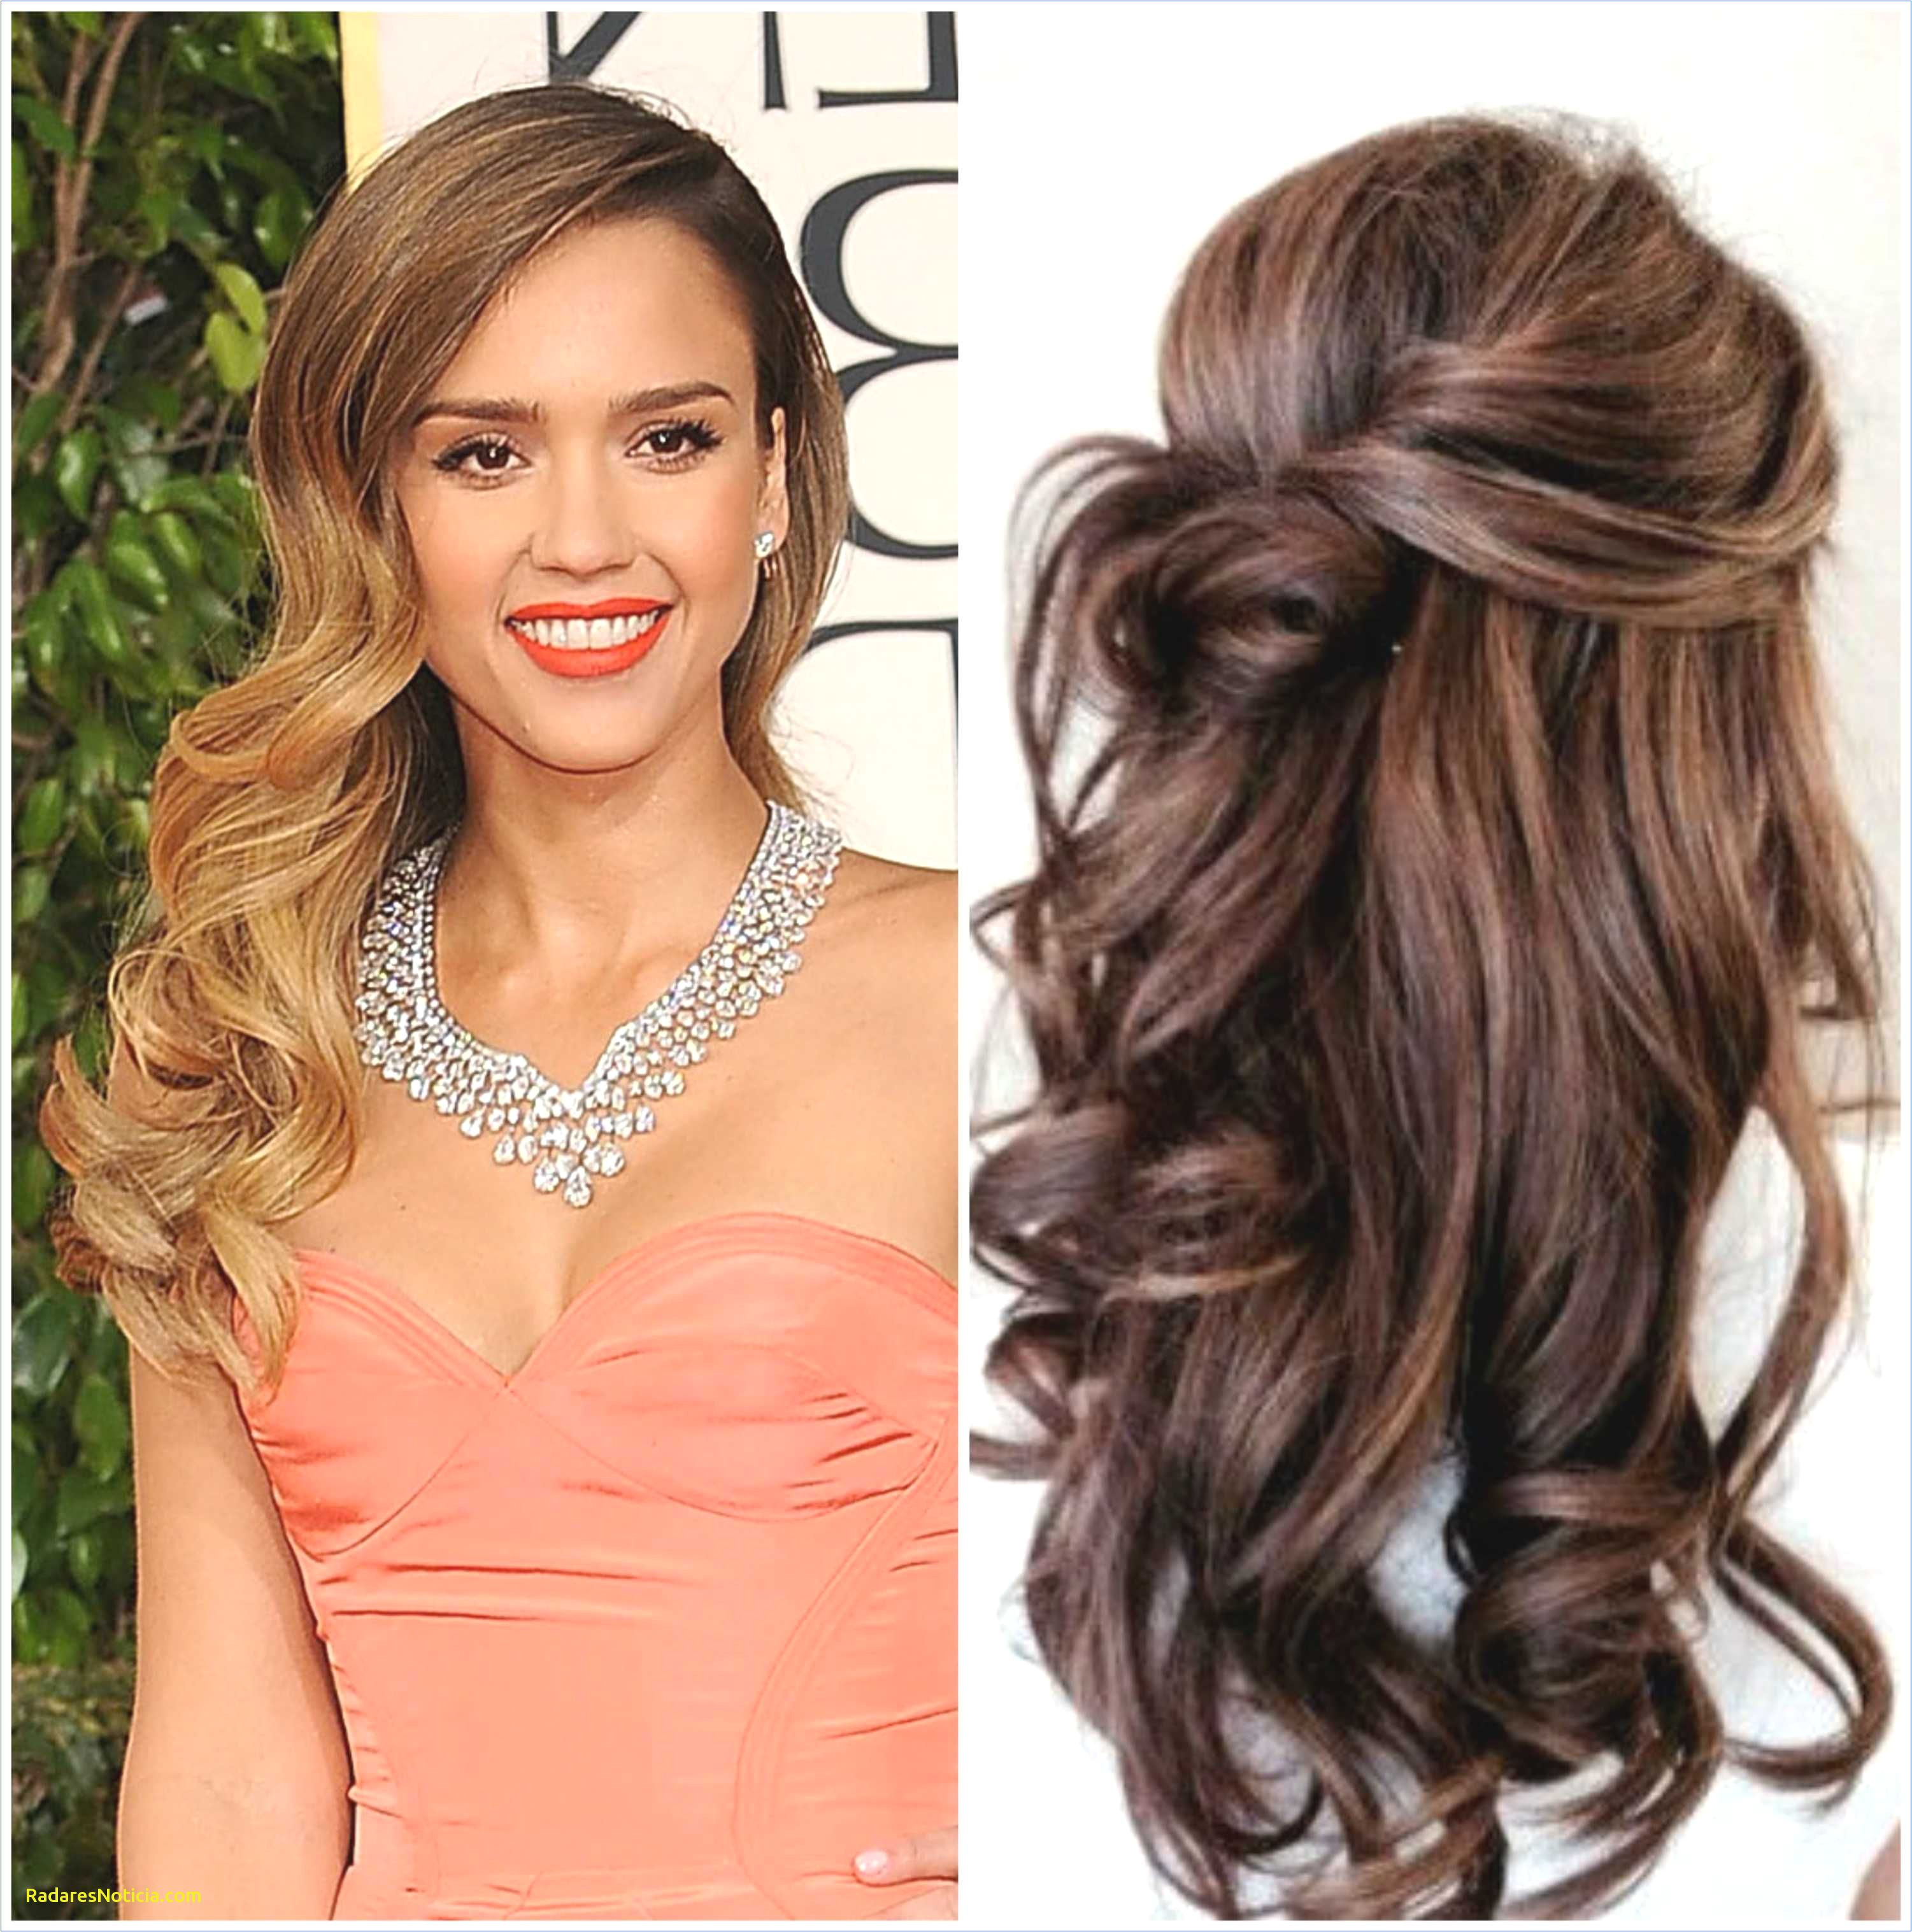 Afro Hair Layer For Inspirational Hairstyles For Long Hair 2015 Luxury I Pinimg 1200x 0d Hairstyle Curly Hair Video accessibilitefo from curled braided